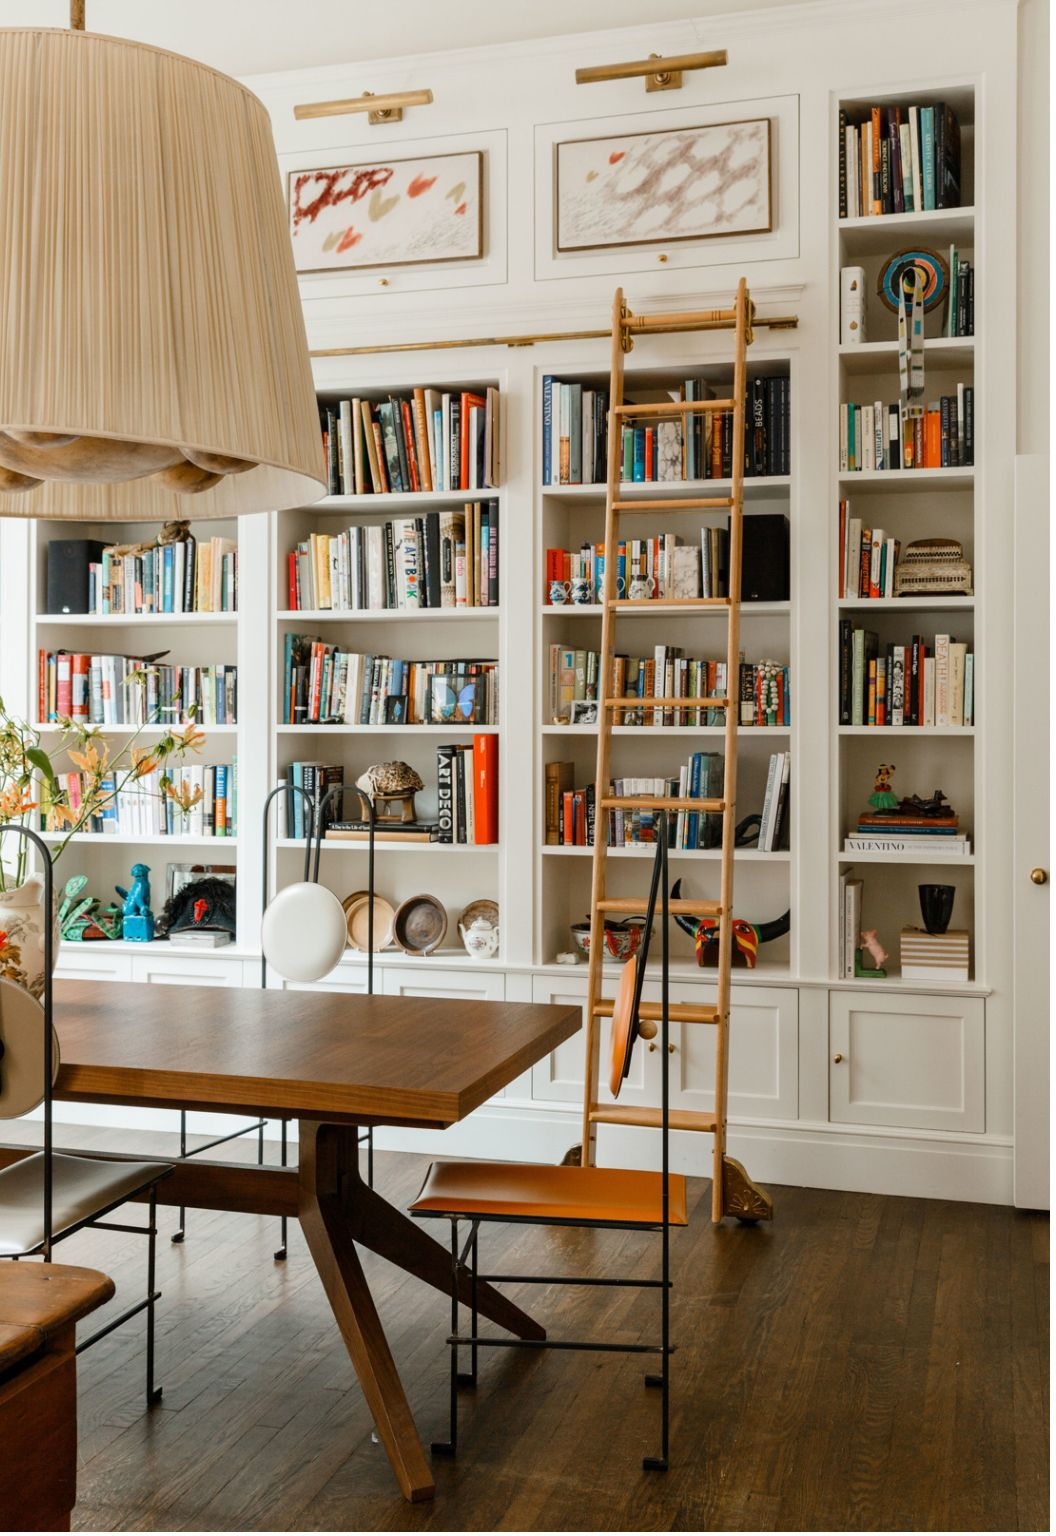 Interior Design Home Library: Cabinet & Case Dream House Library Ladder Attached Rolling